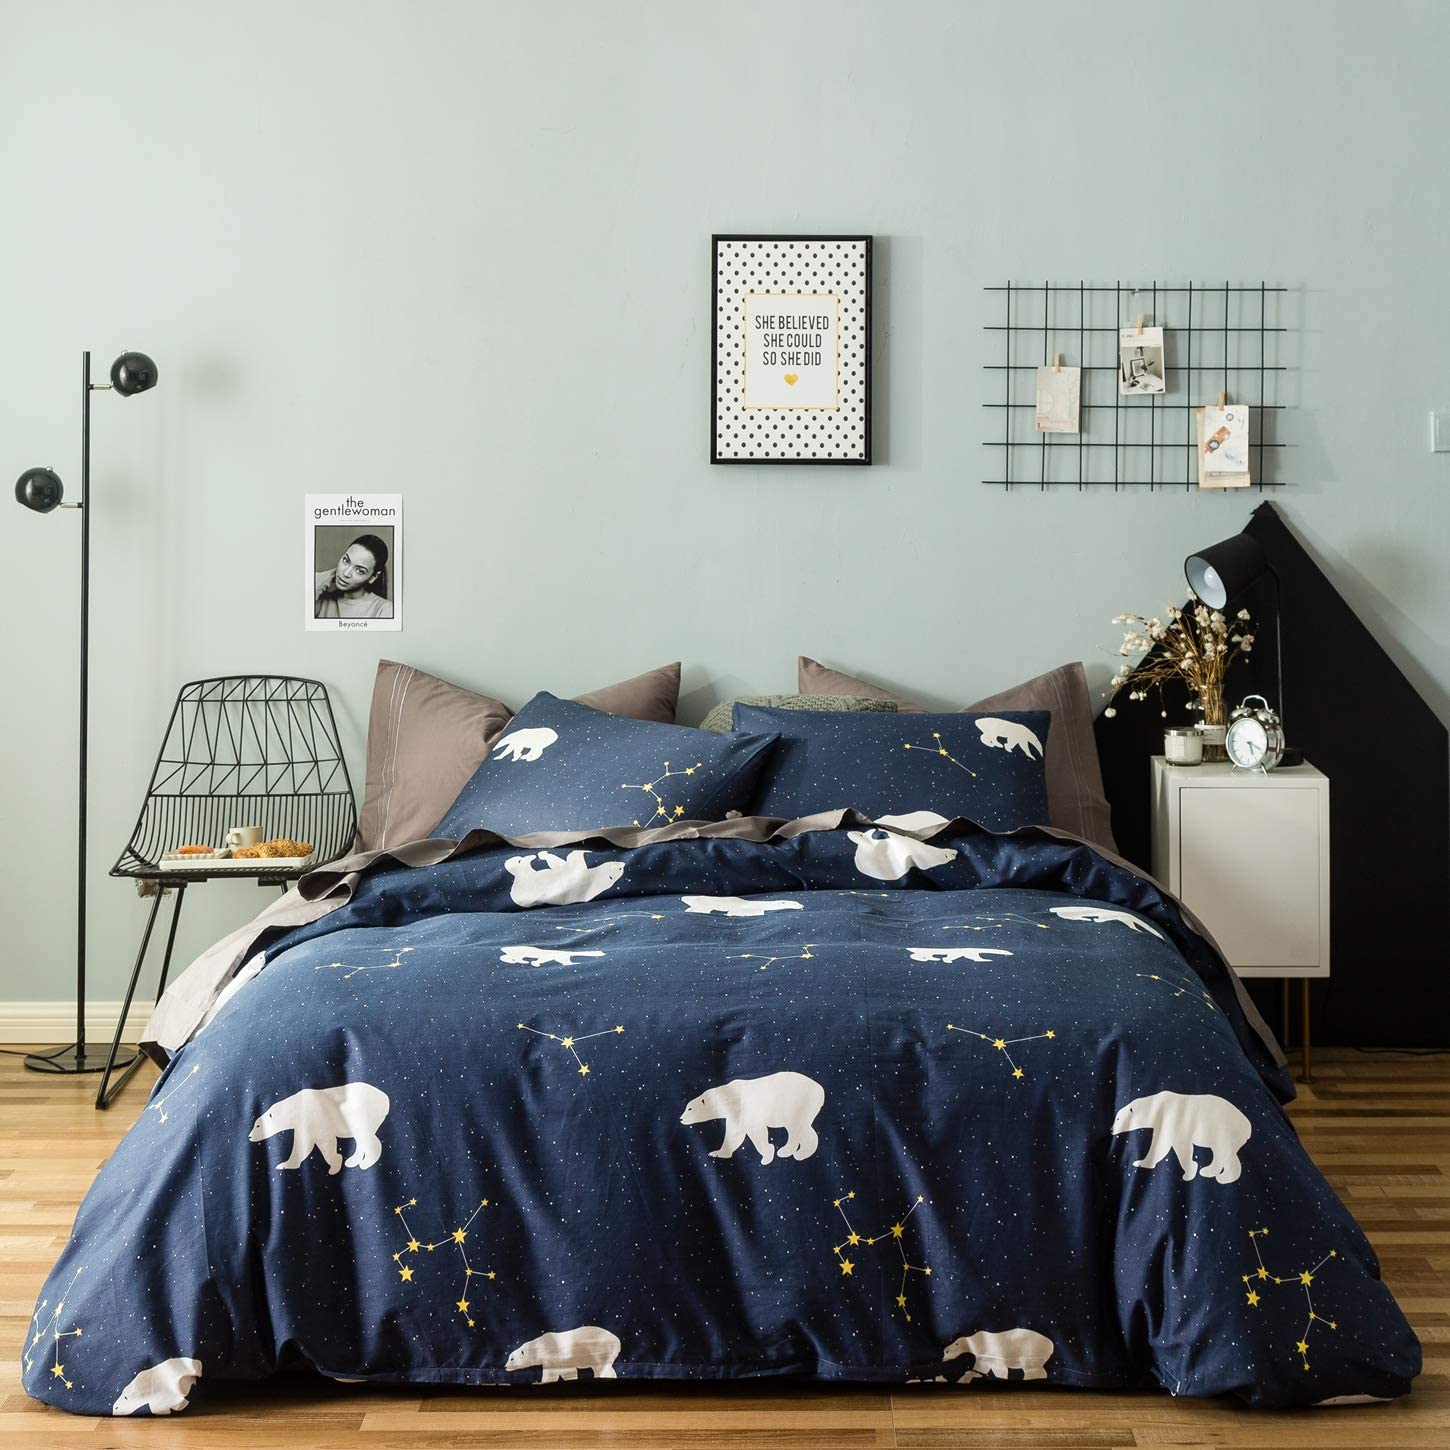 SUSYBAO 3 Pieces Duvet Cover Set 100% Natural Cotton King Size Navy and White Polar Bear Constellation Bedding with Zipper Ties 1 Duvet Cover 2 Pillowcases Luxury Quality Soft Durable Breathable